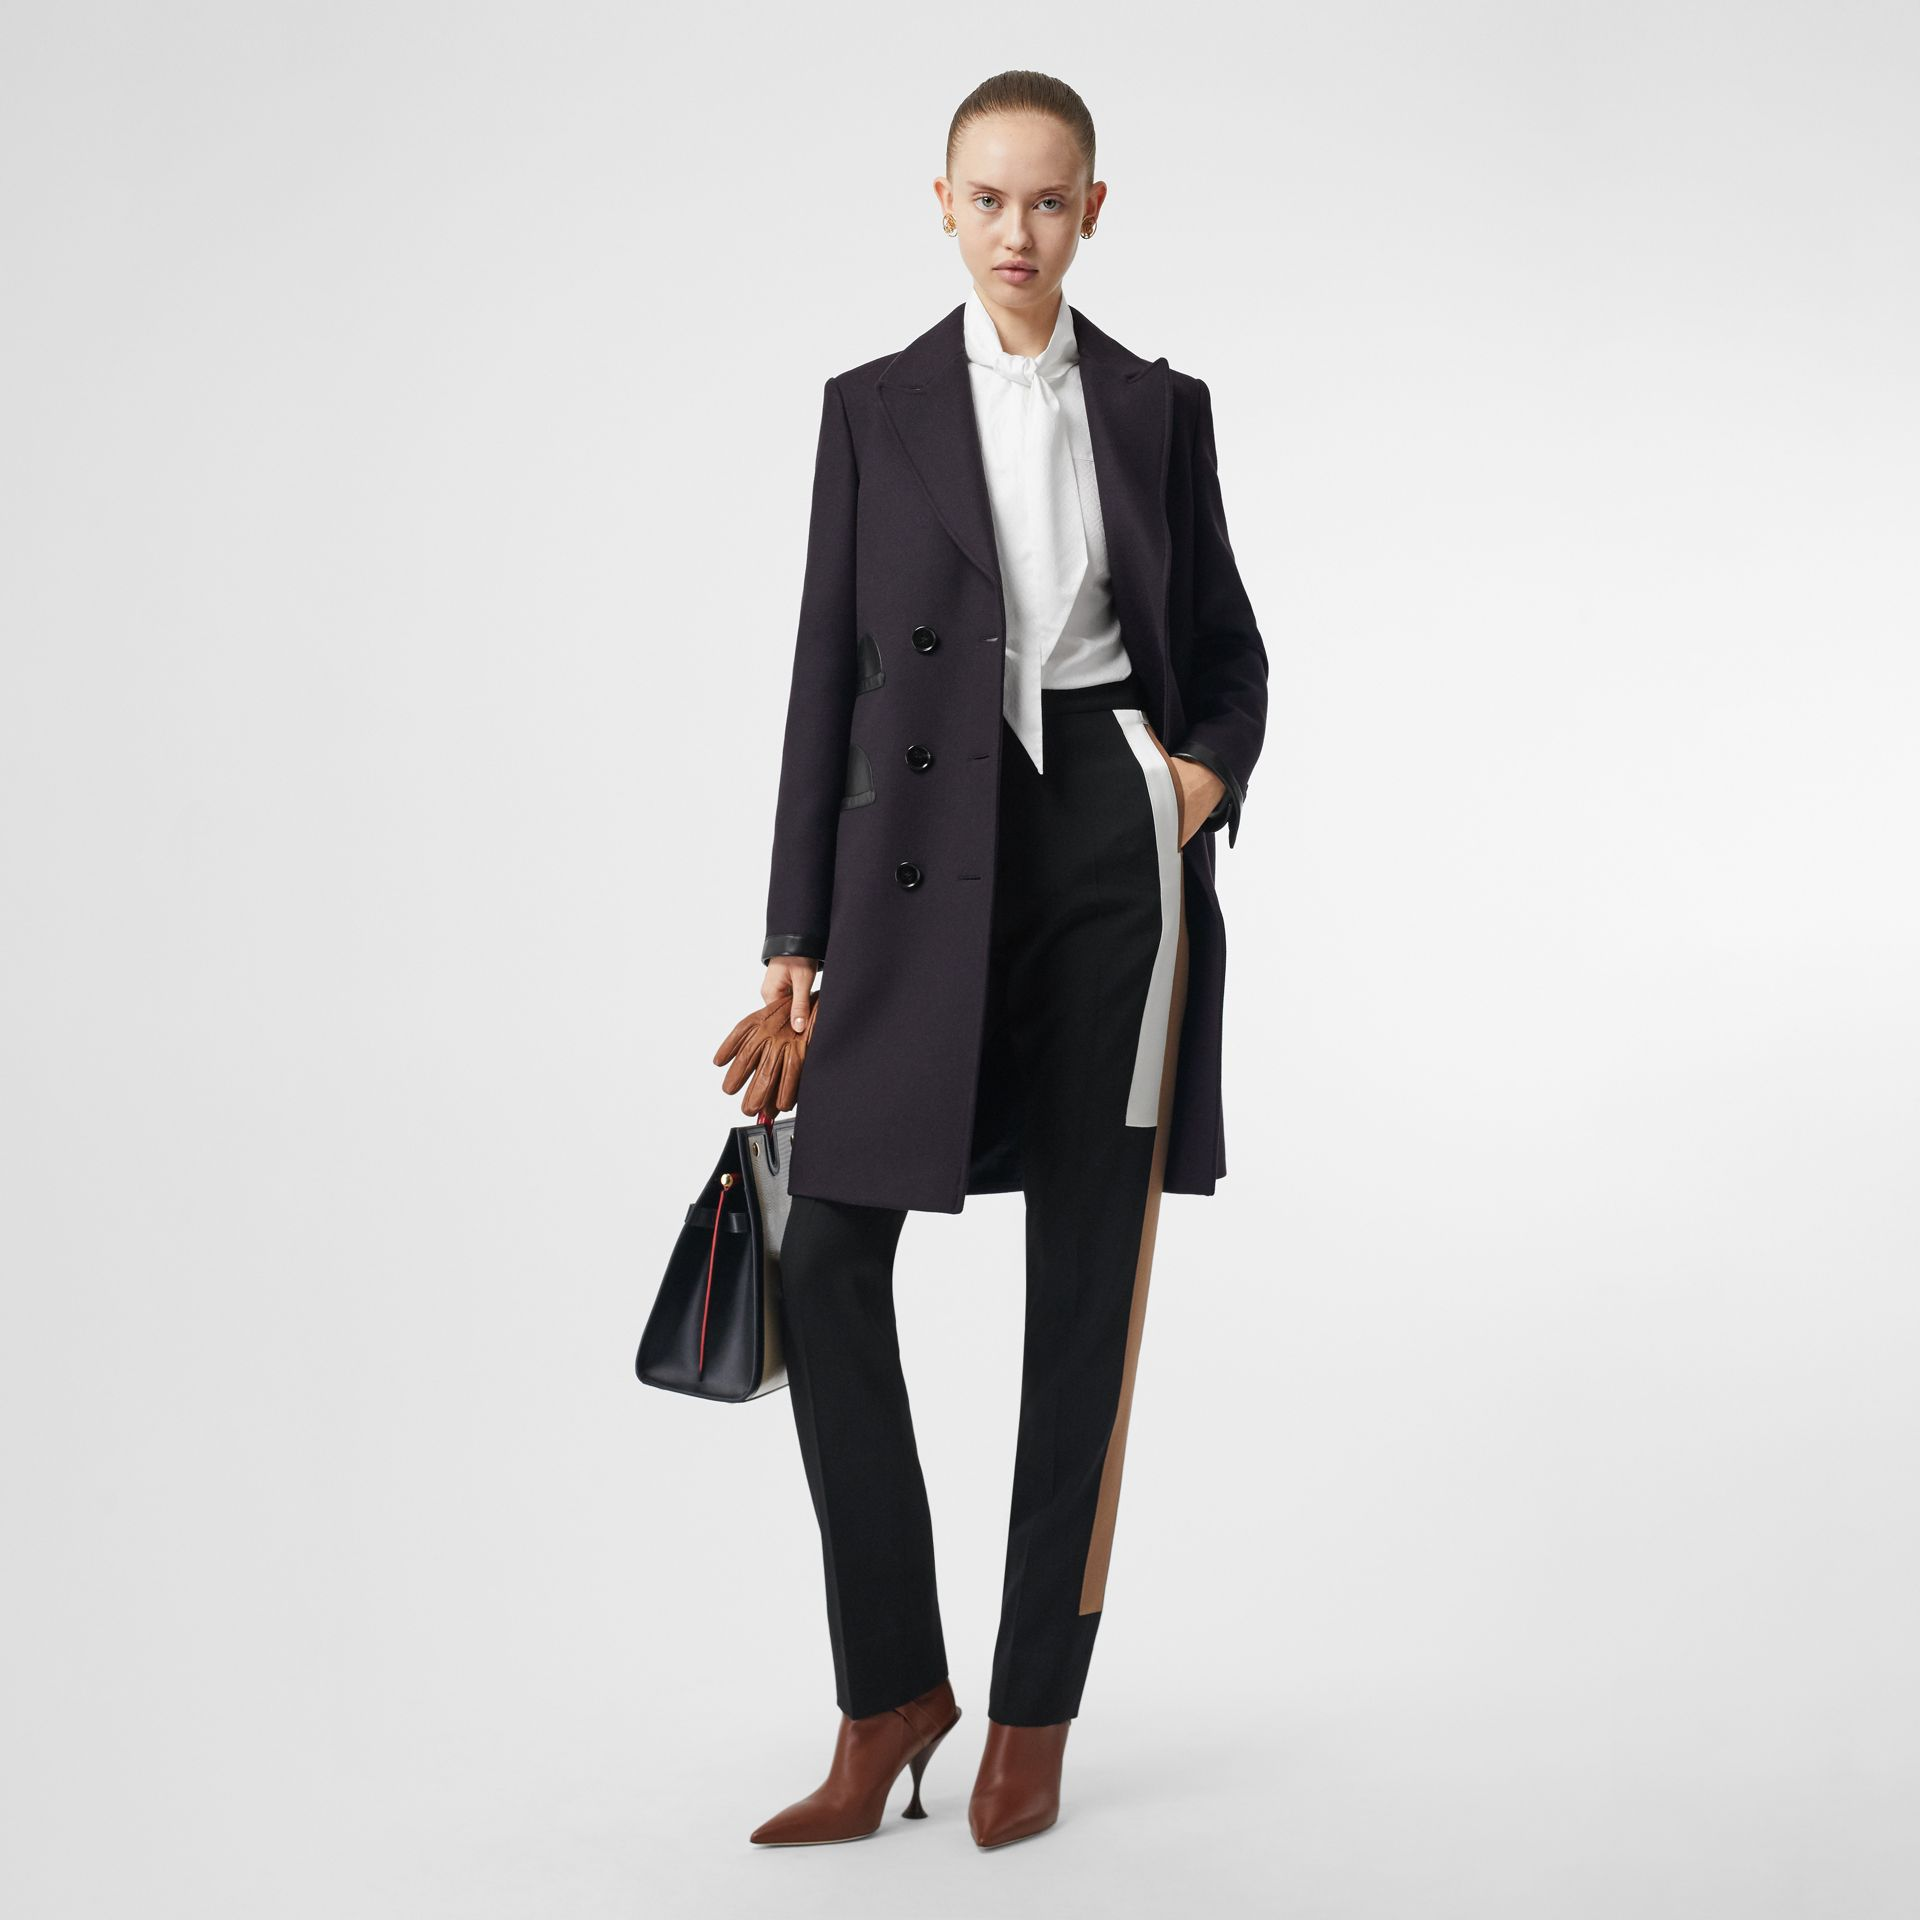 Lambskin Trim Wool Cashmere Blend Tailored Coat in Black Maroon - Women | Burberry United States - gallery image 0